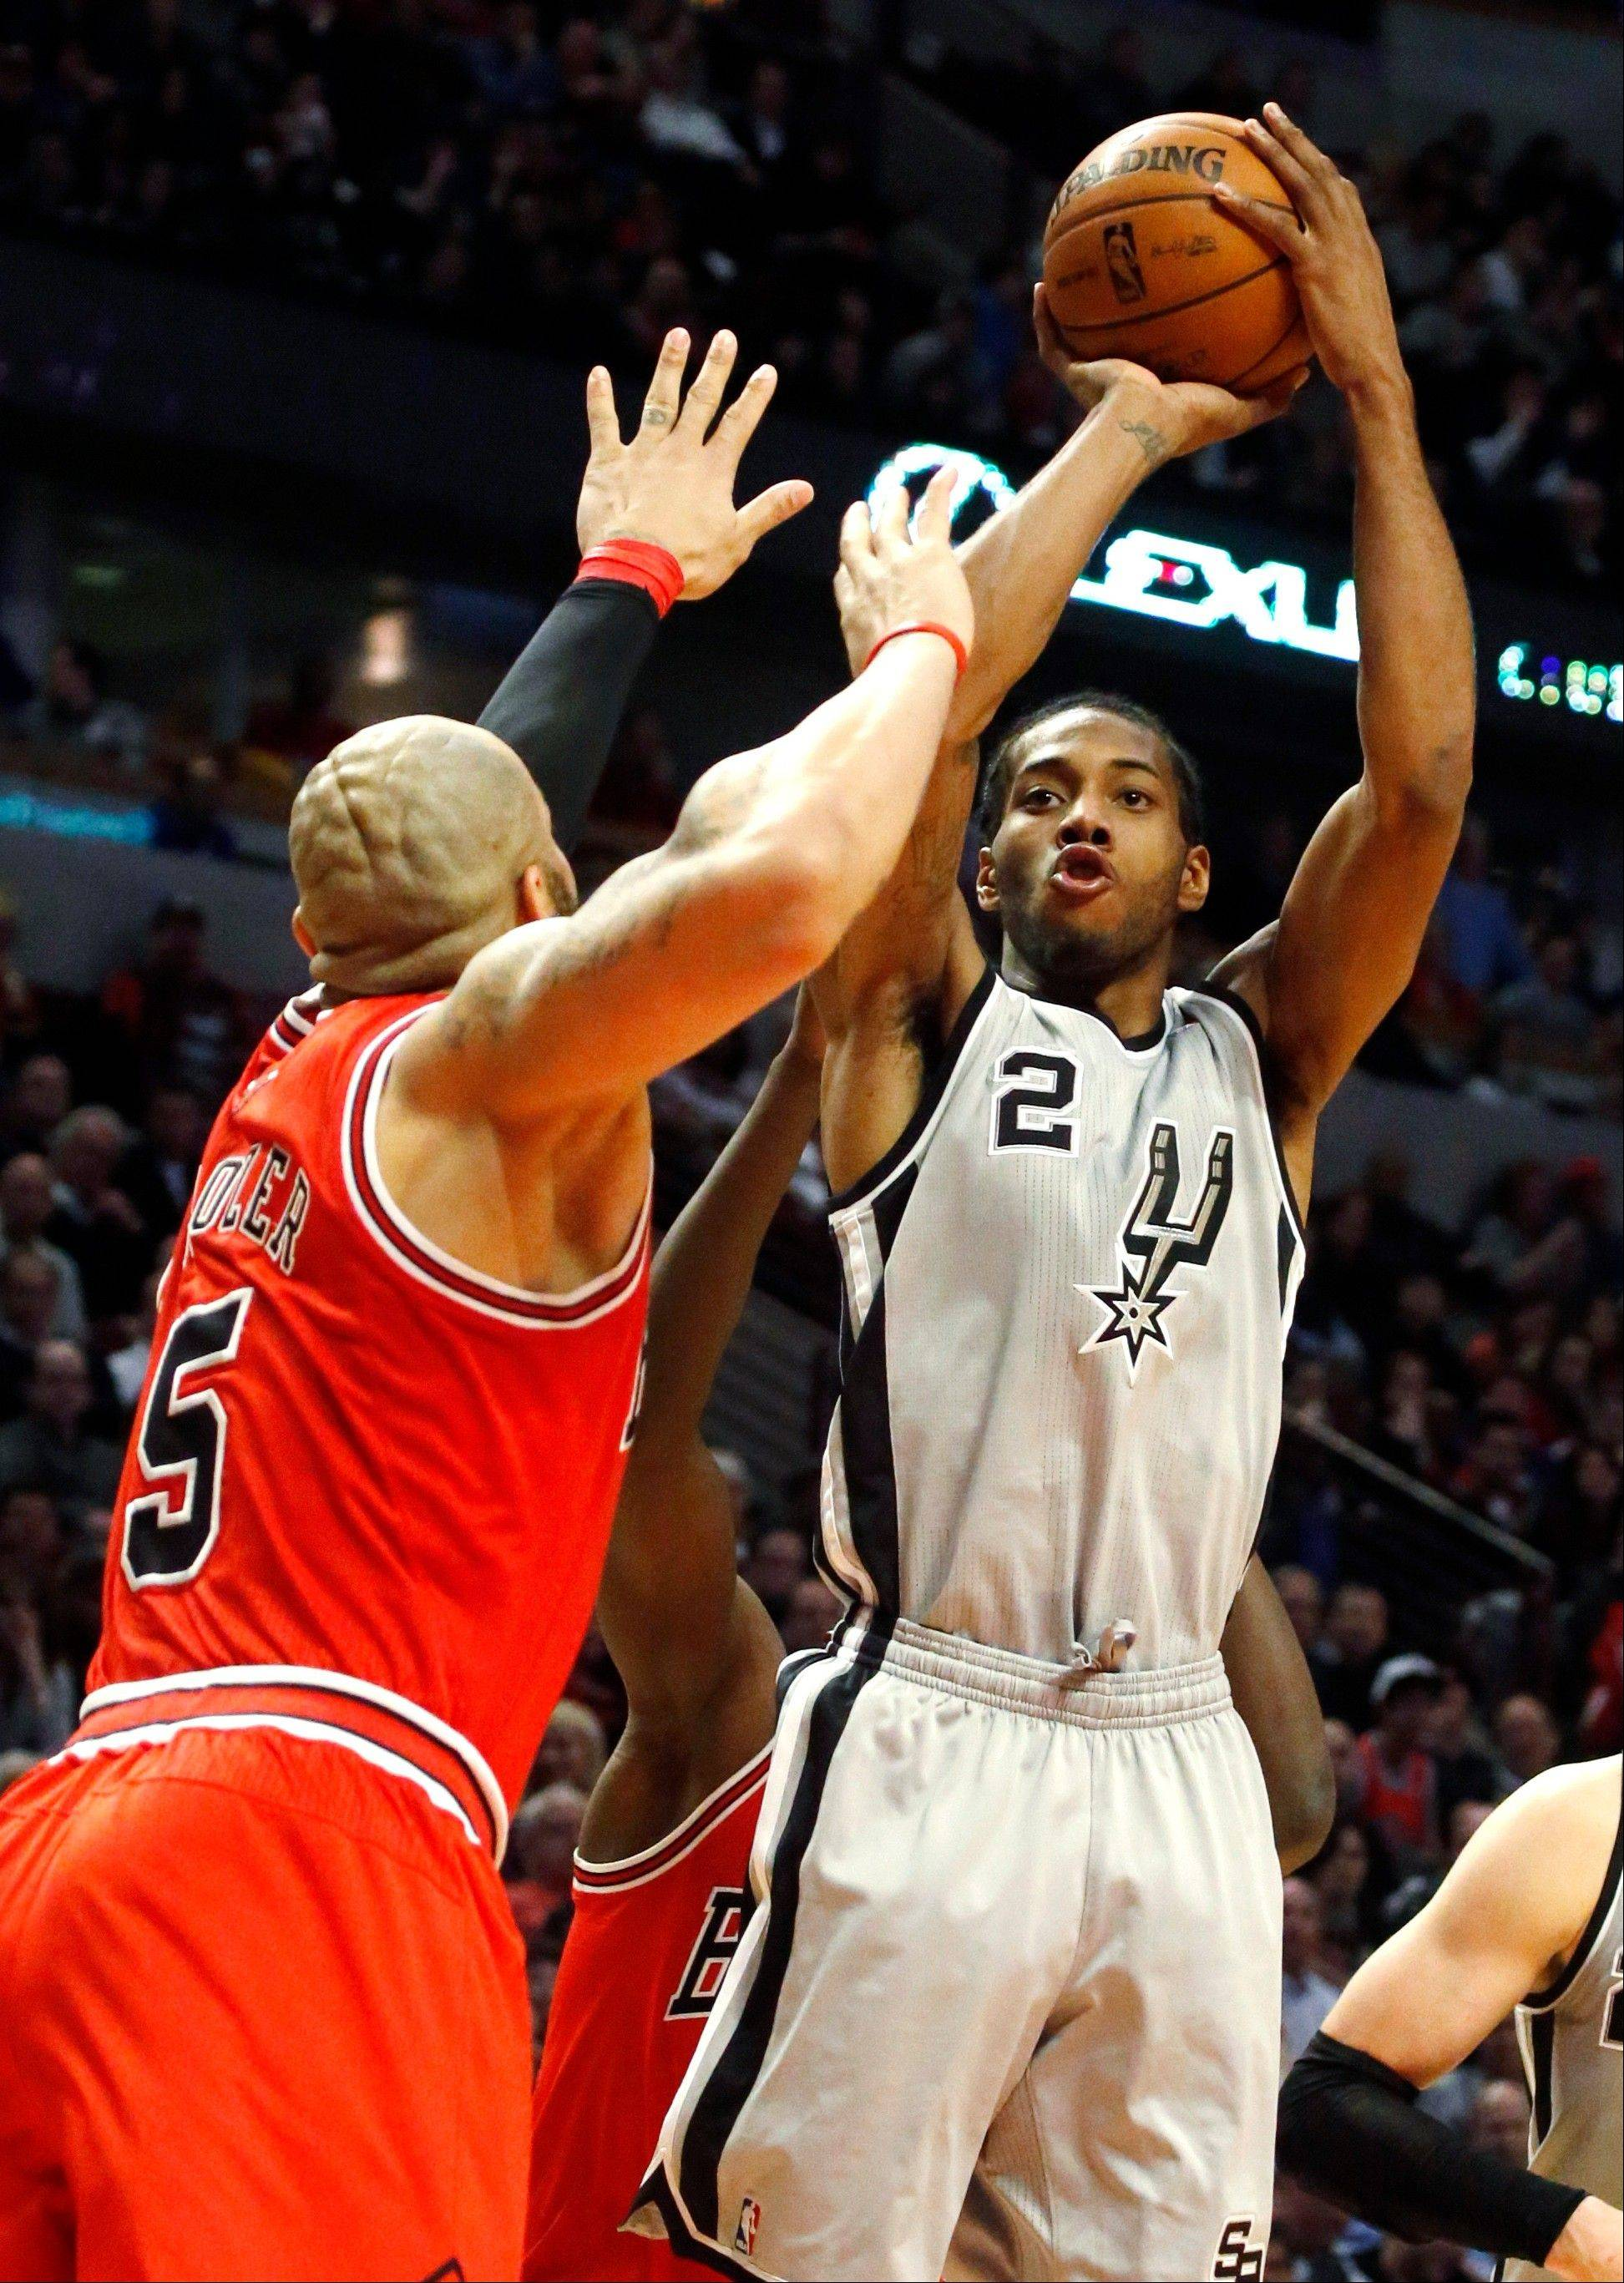 Spurs forward Kawhi Leonard shoots over Bulls forward Carlos Boozer during the second half Monday night at the United Center.